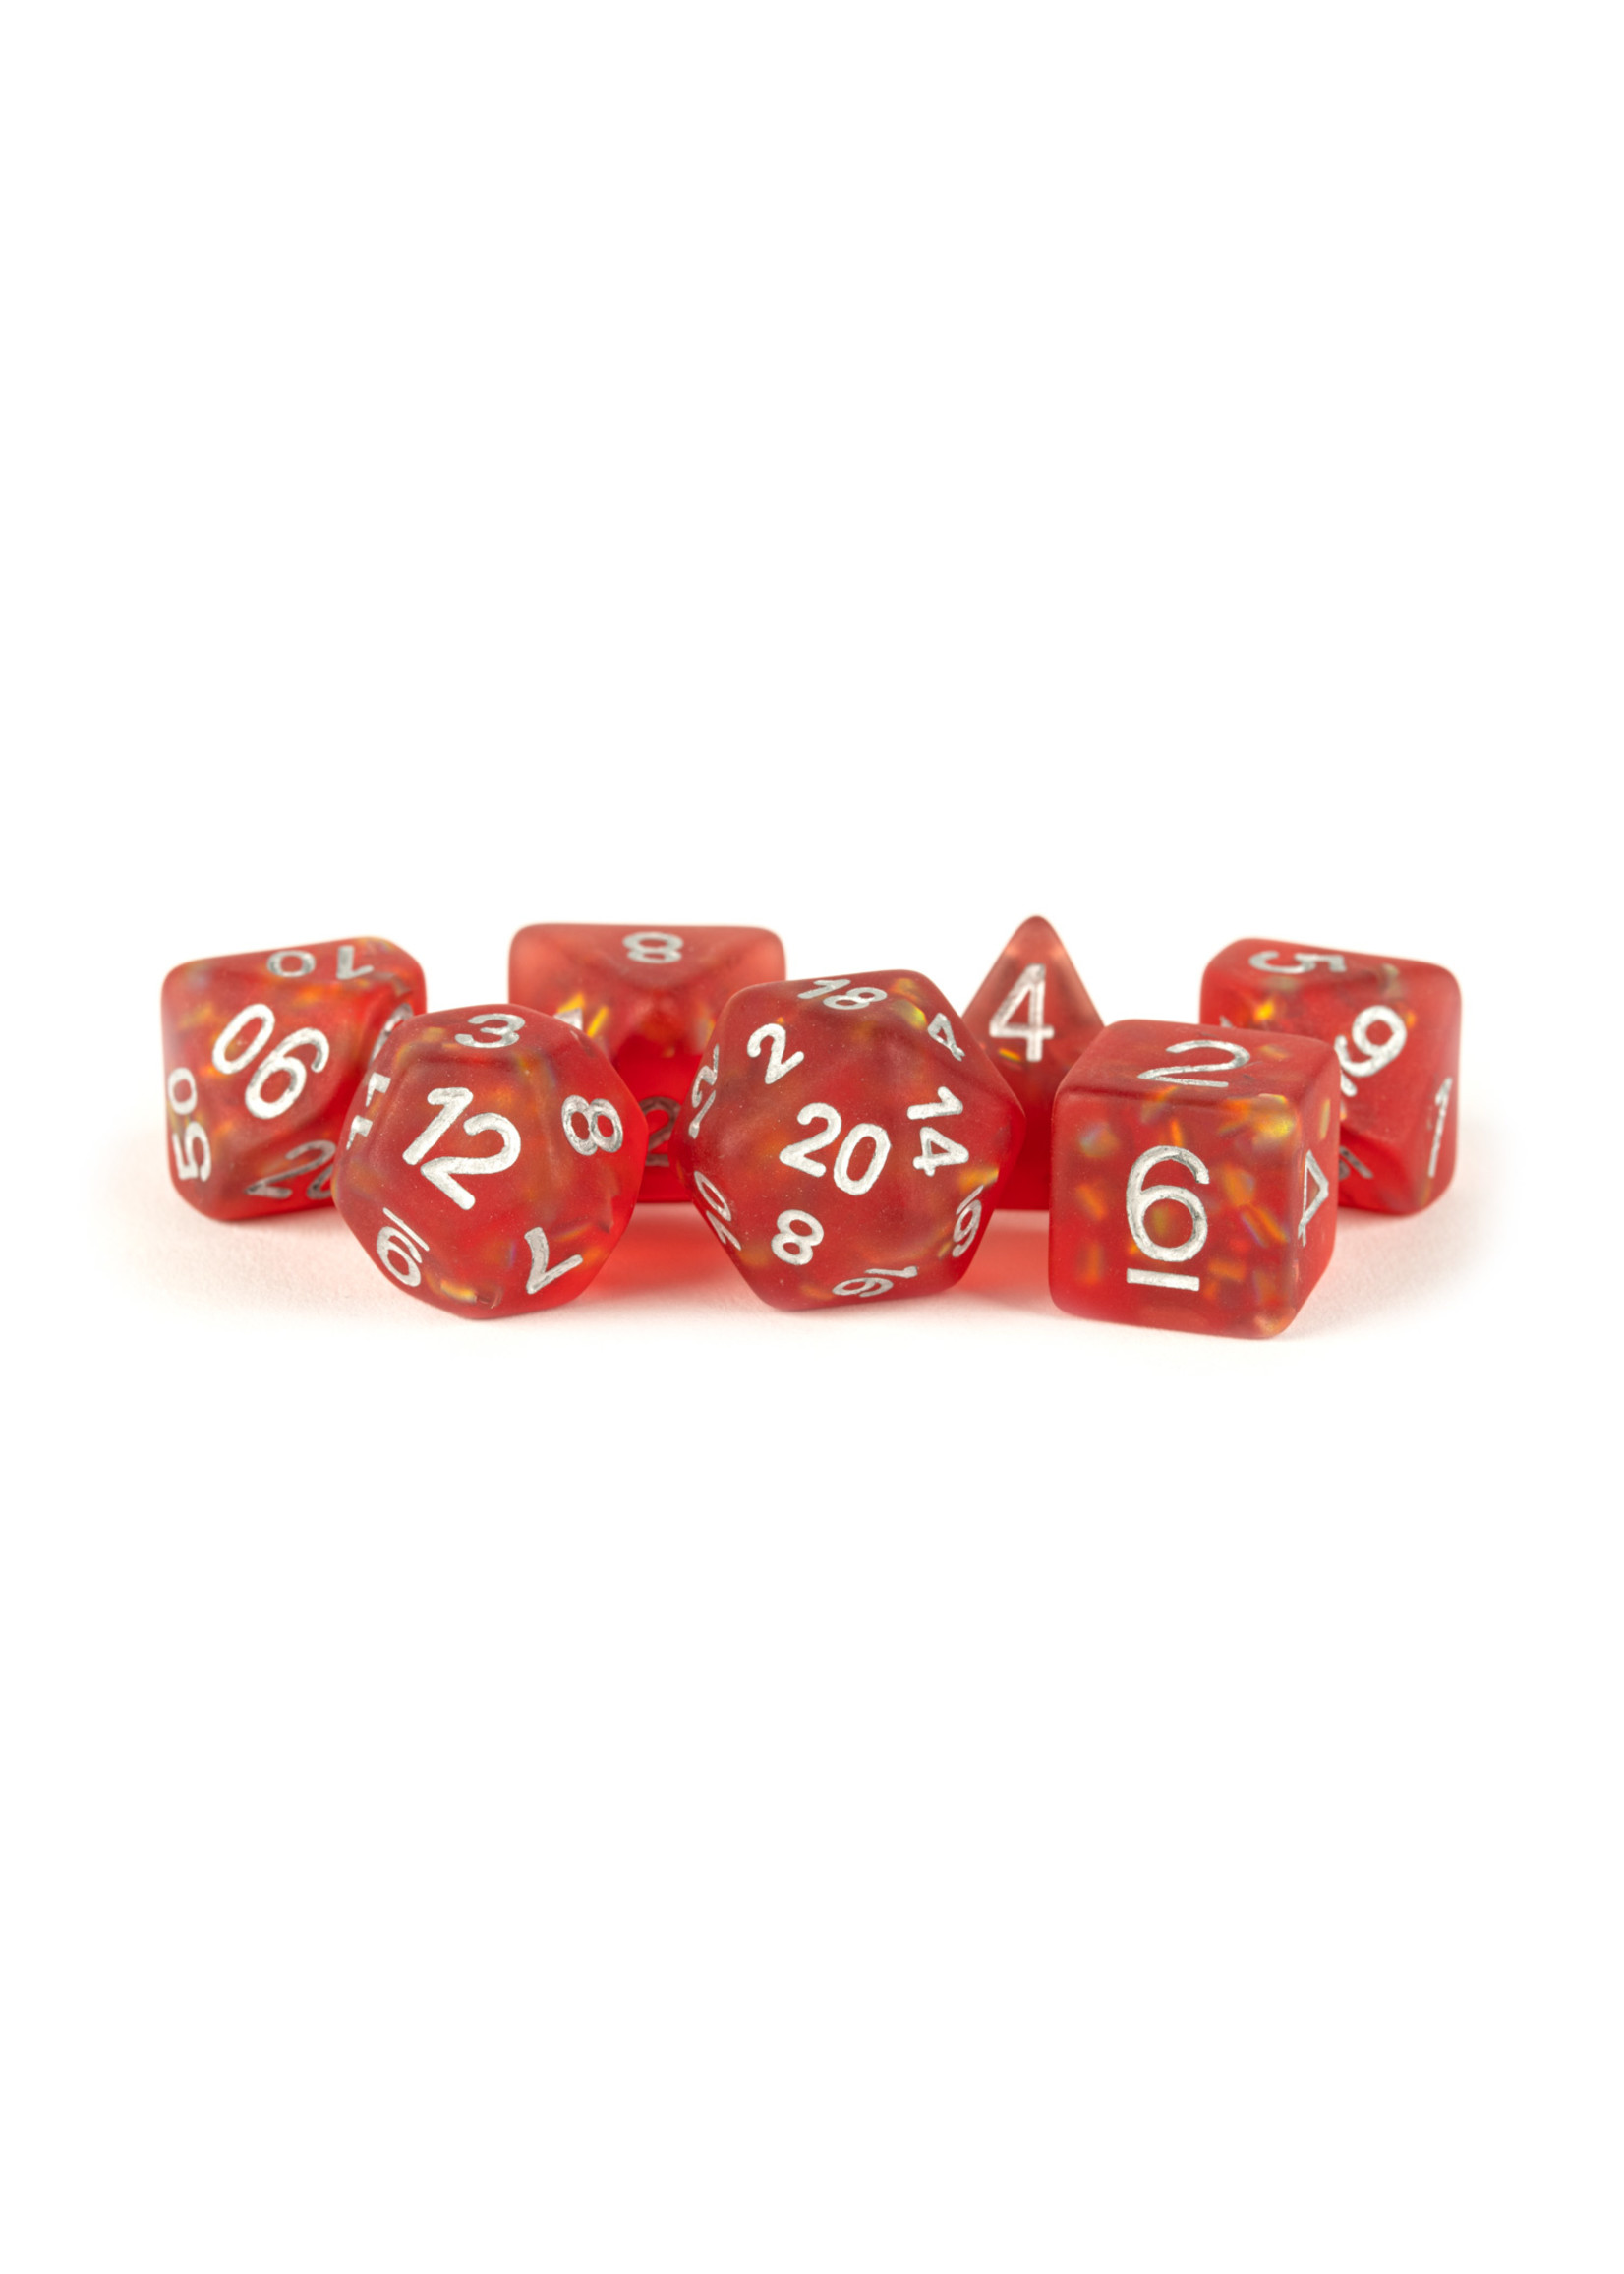 Icy Opal Resin: 16mm Dice Poly Set Red/Silver Numbers (7)